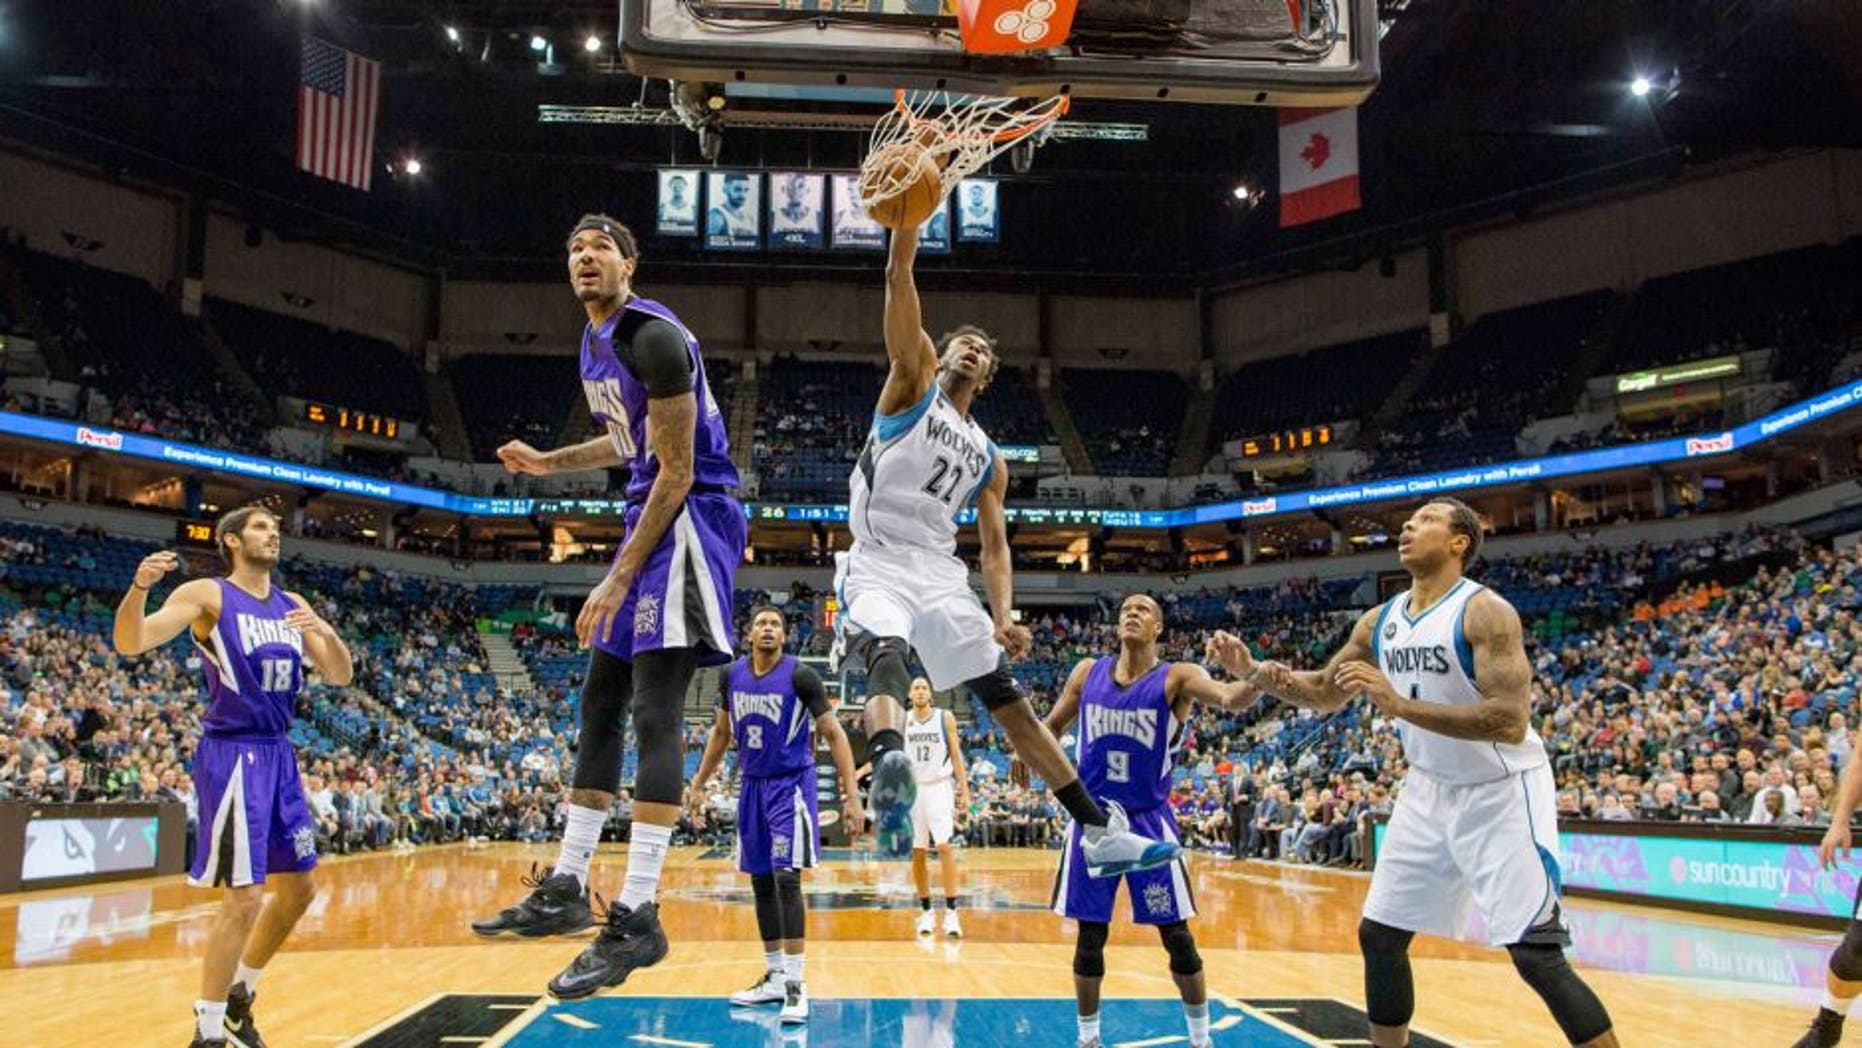 Minnesota Timberwolves guard Andrew Wiggins dunks the ball past Sacramento Kings center Willie Cauley-Stein.